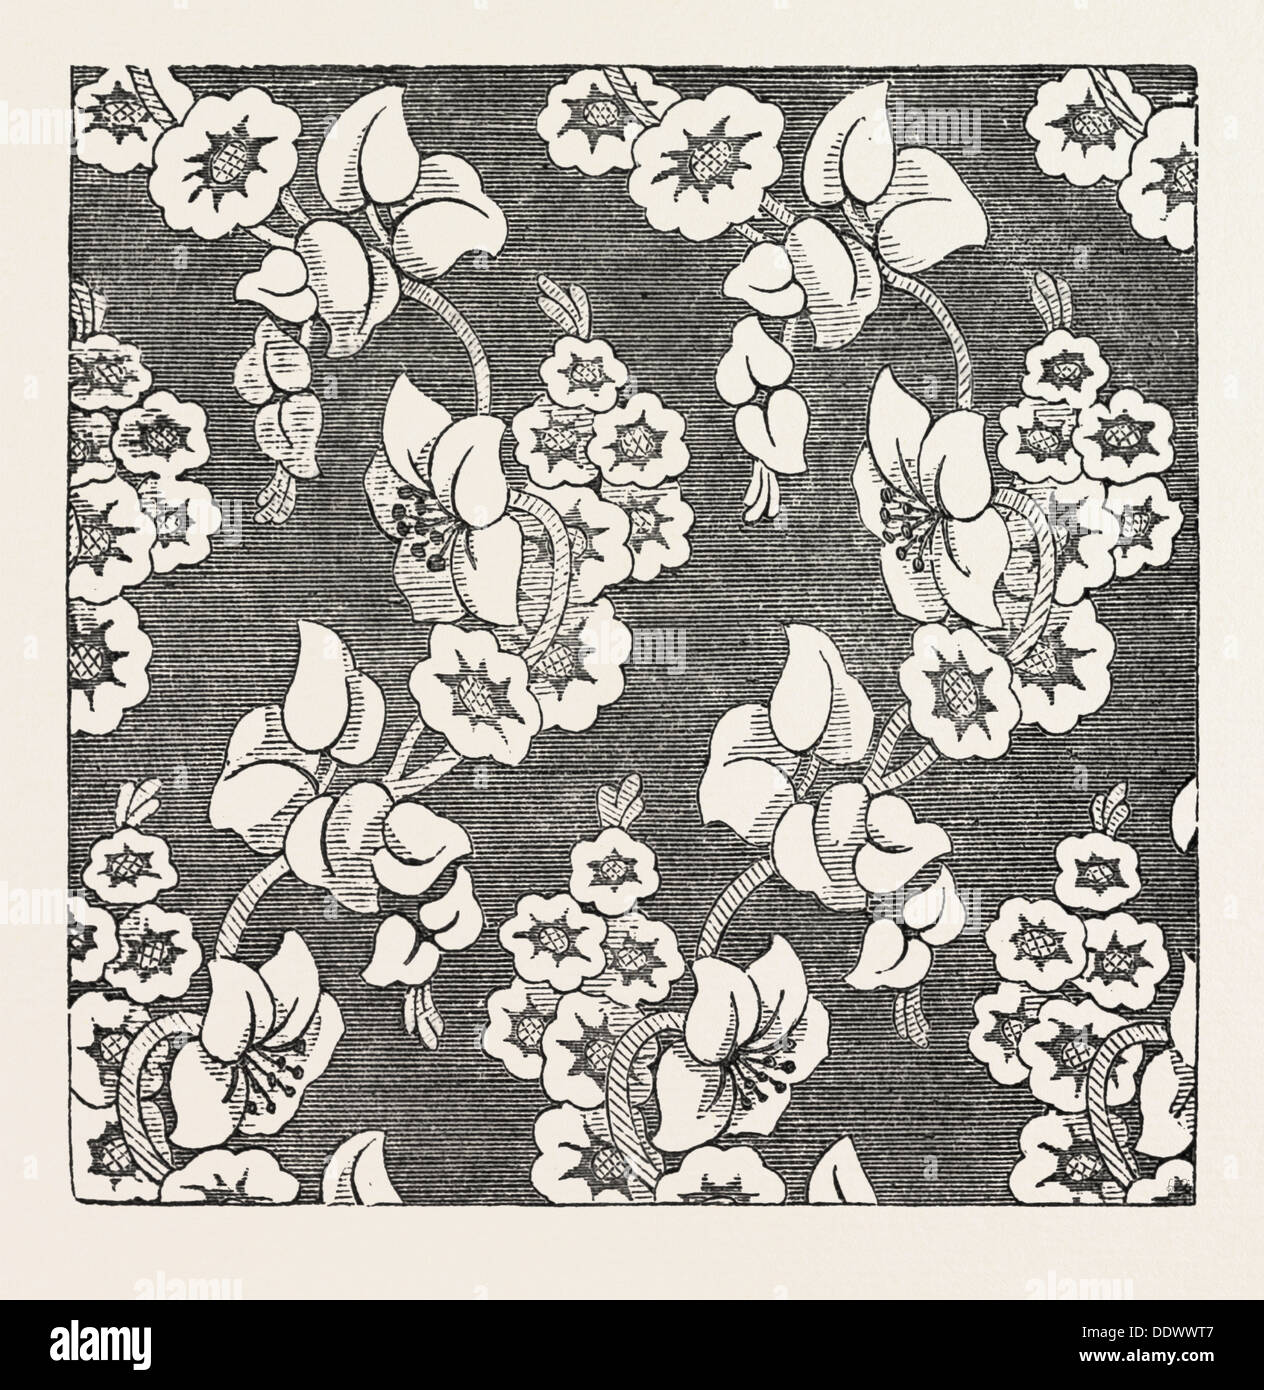 DAMASK PATTERN, BY SHEPHARD AND CO., HALIFAX - Stock Image